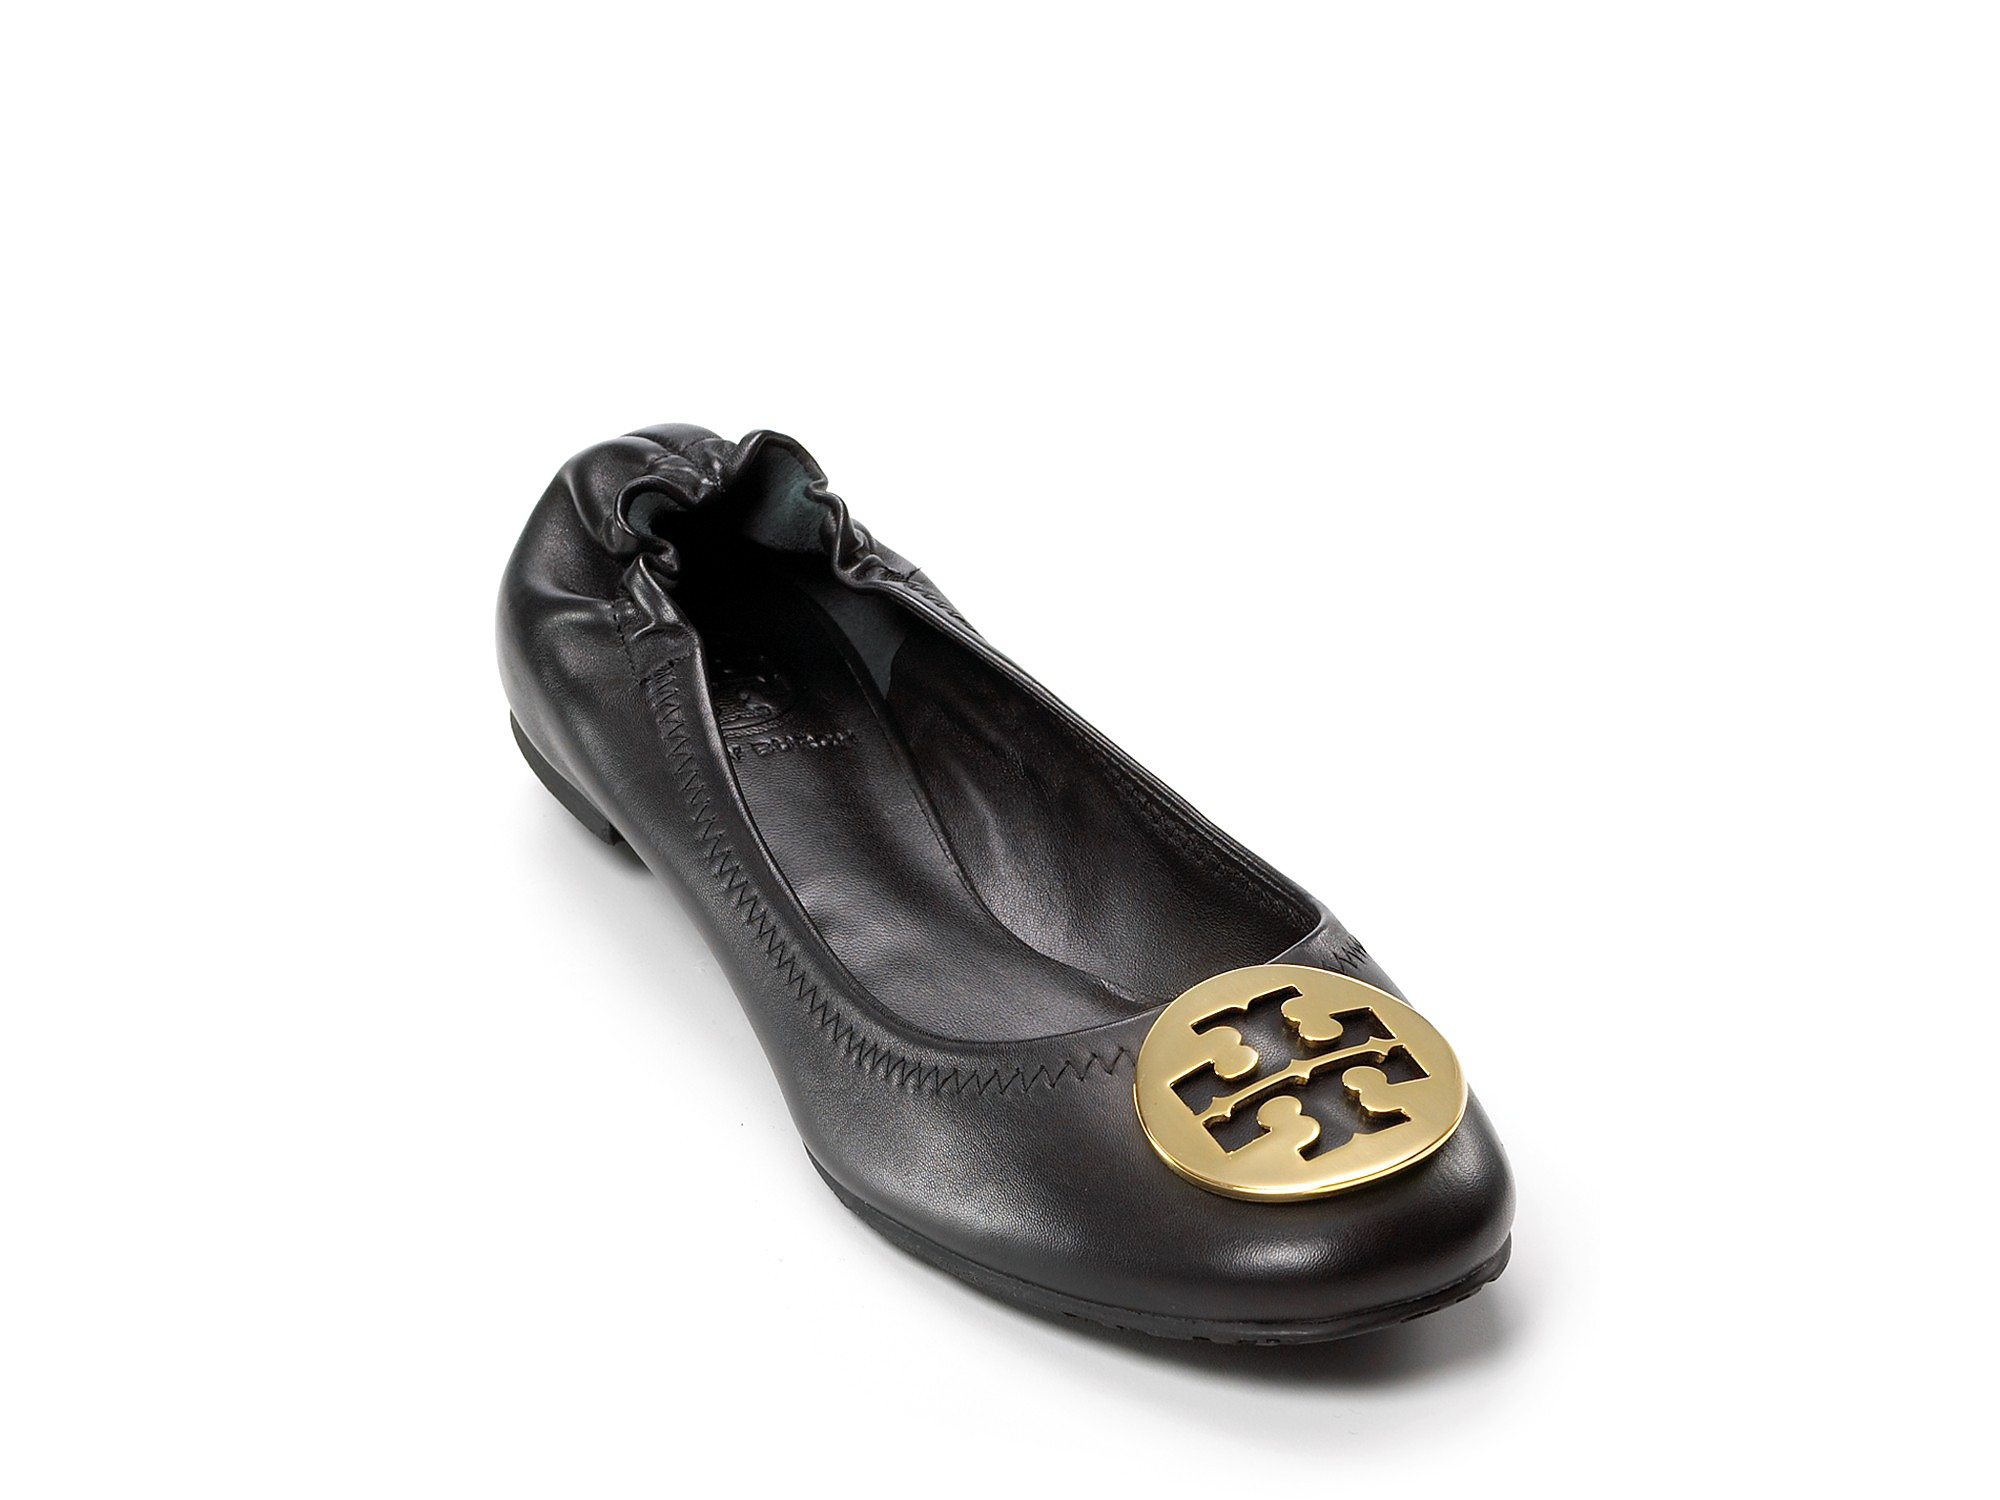 Tory Burch Shoes Uk